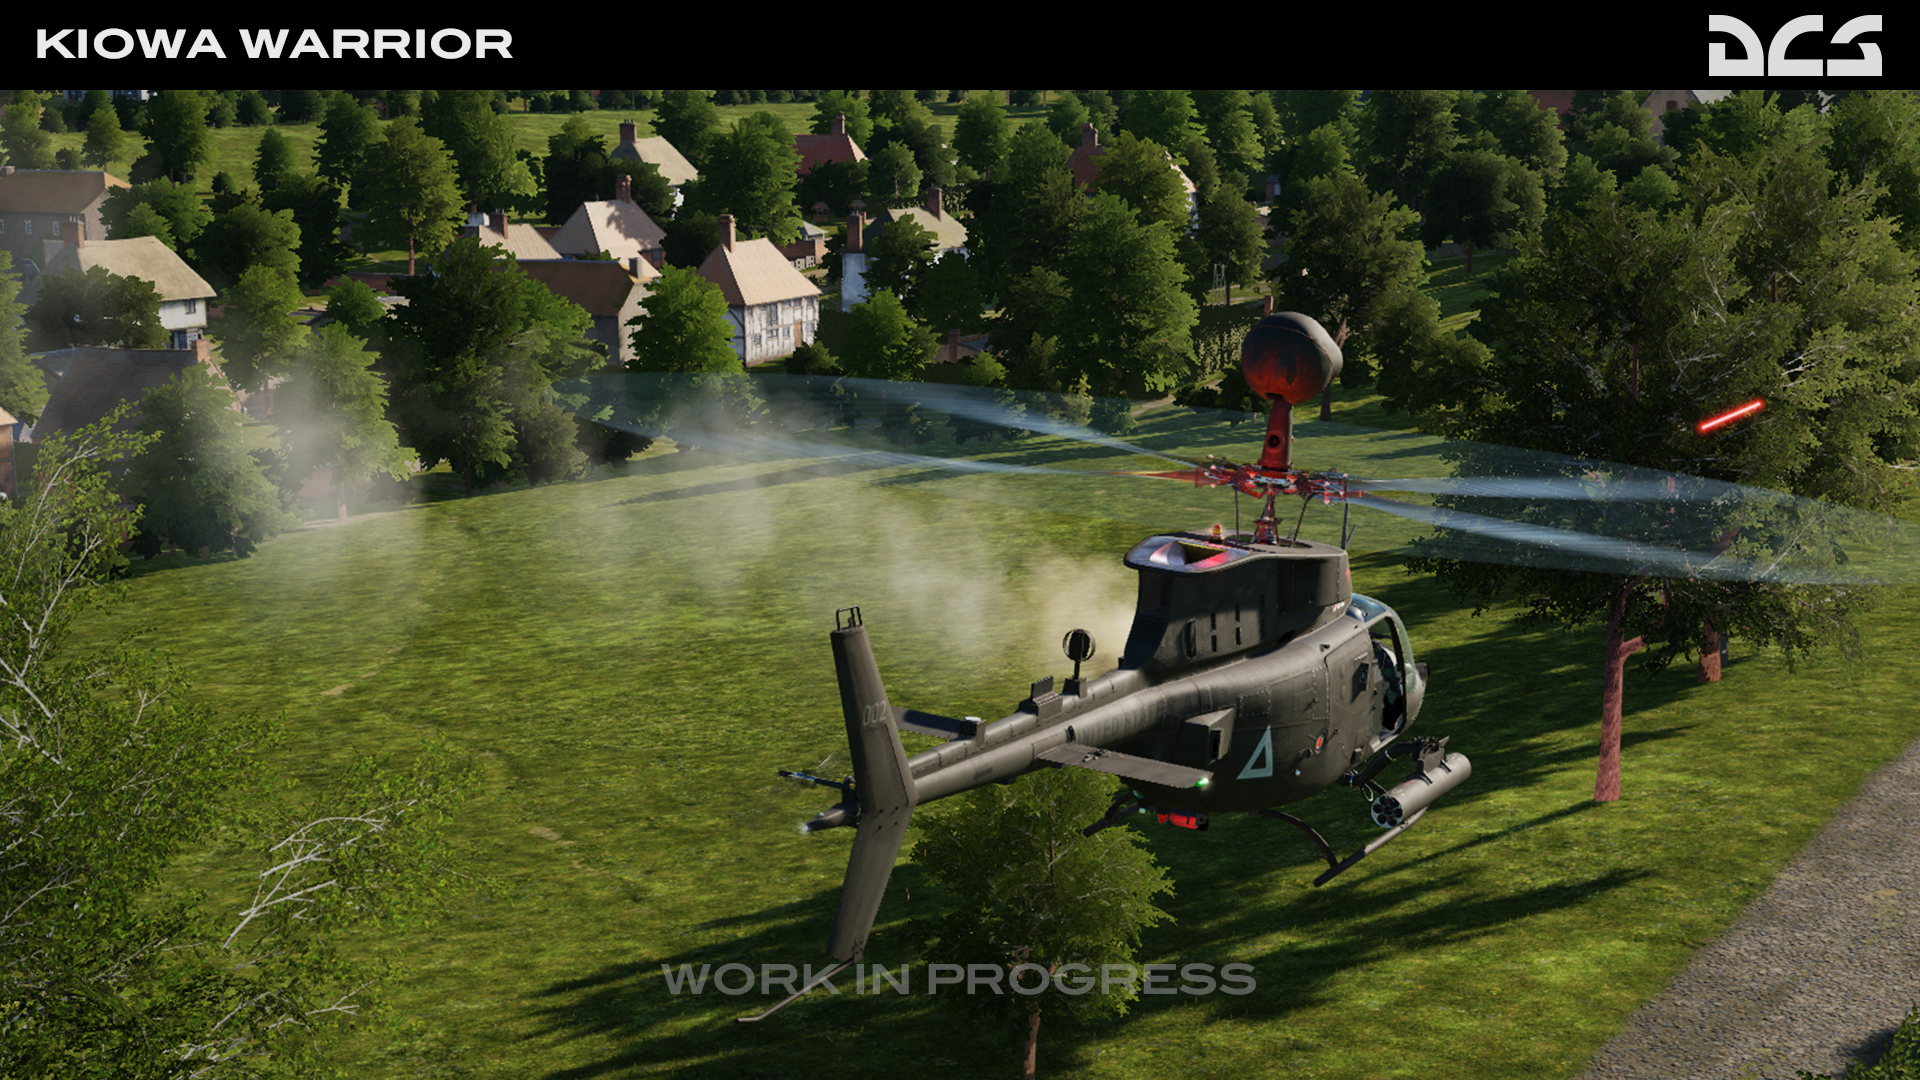 dcs-world-kiowa-warrior-01.jpg